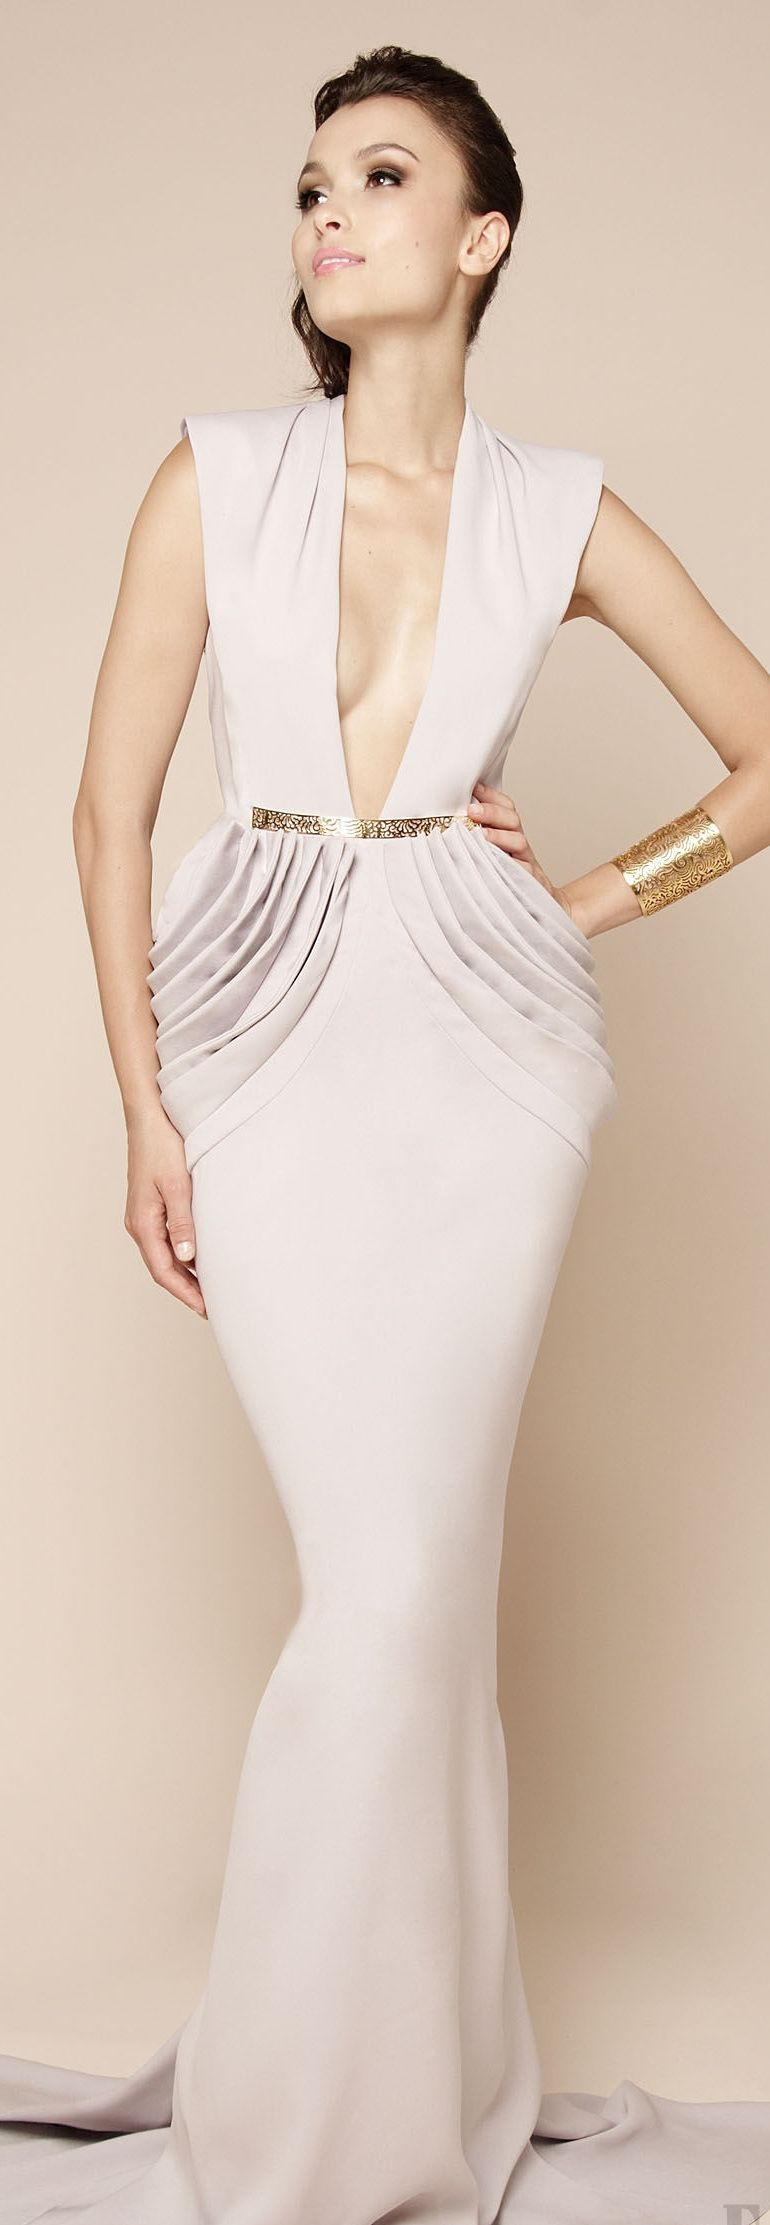 Dina jsr rtw ss evening gowns pinterest ss gowns and couture